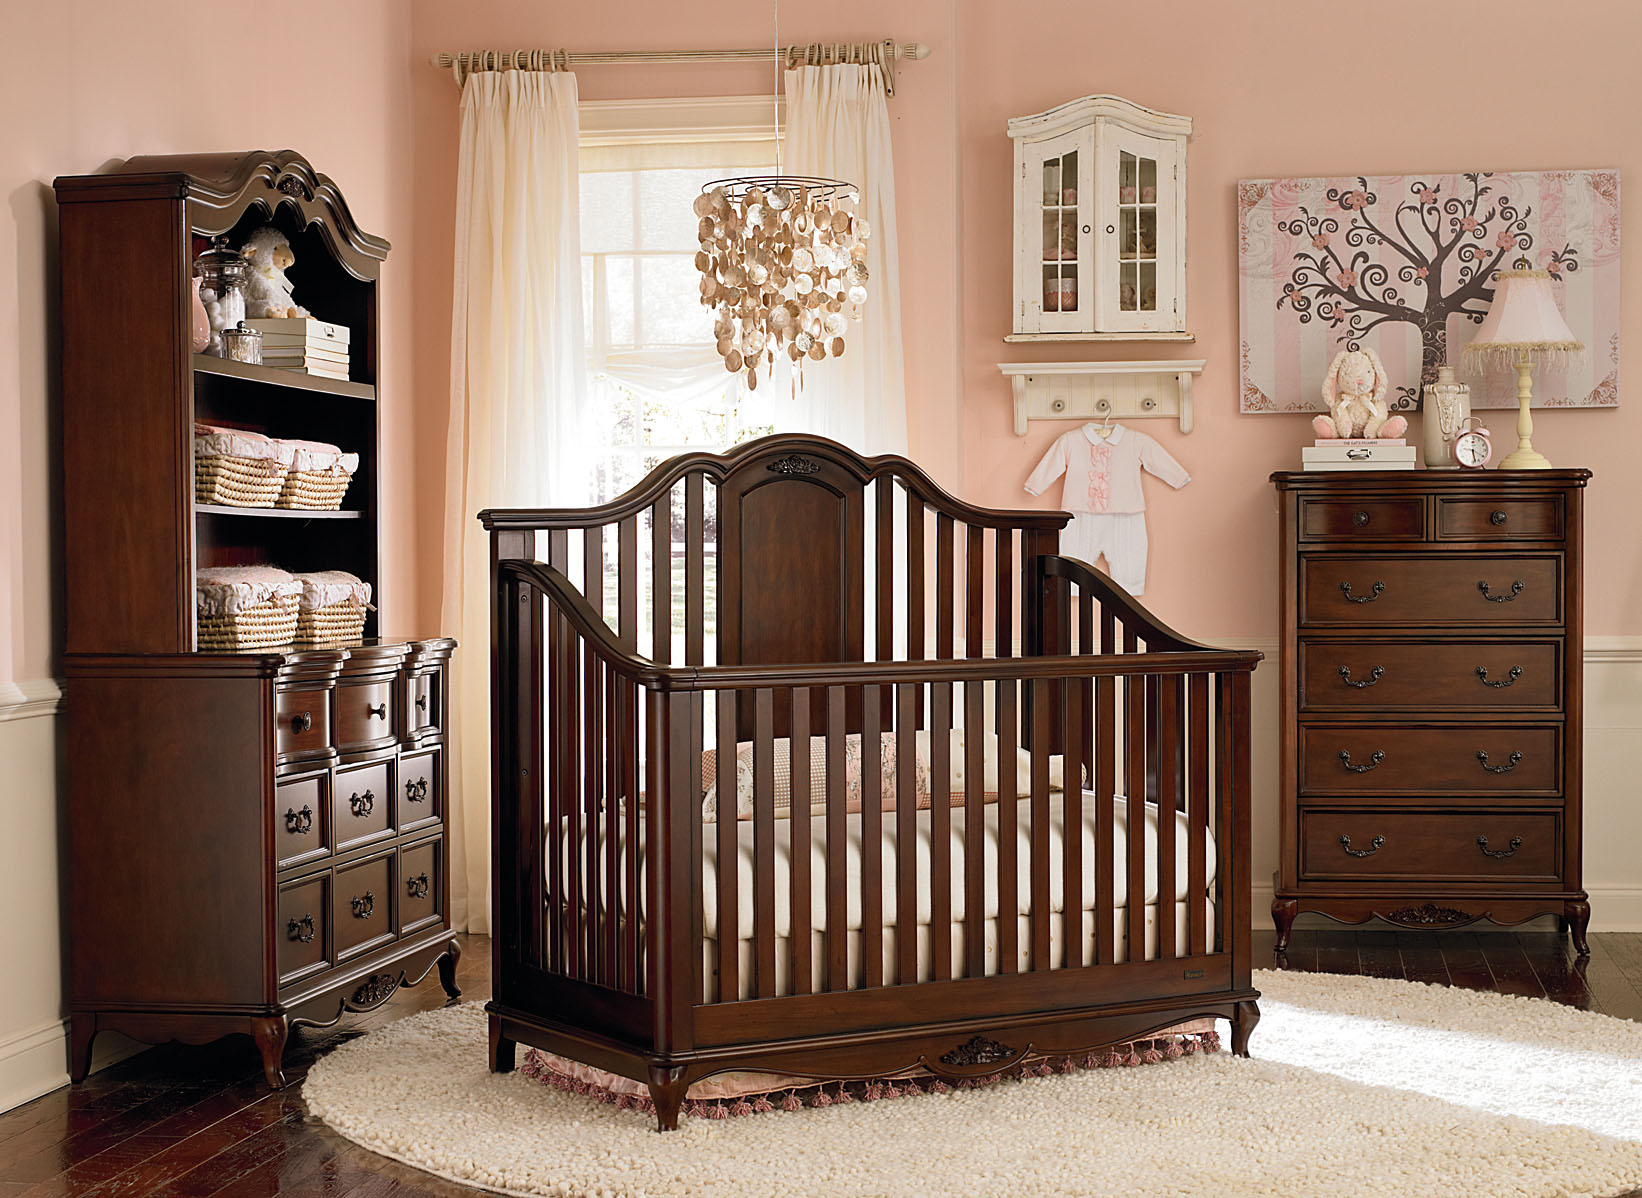 Decoration designs guide best decoration designs guides for Best baby cribs for small spaces